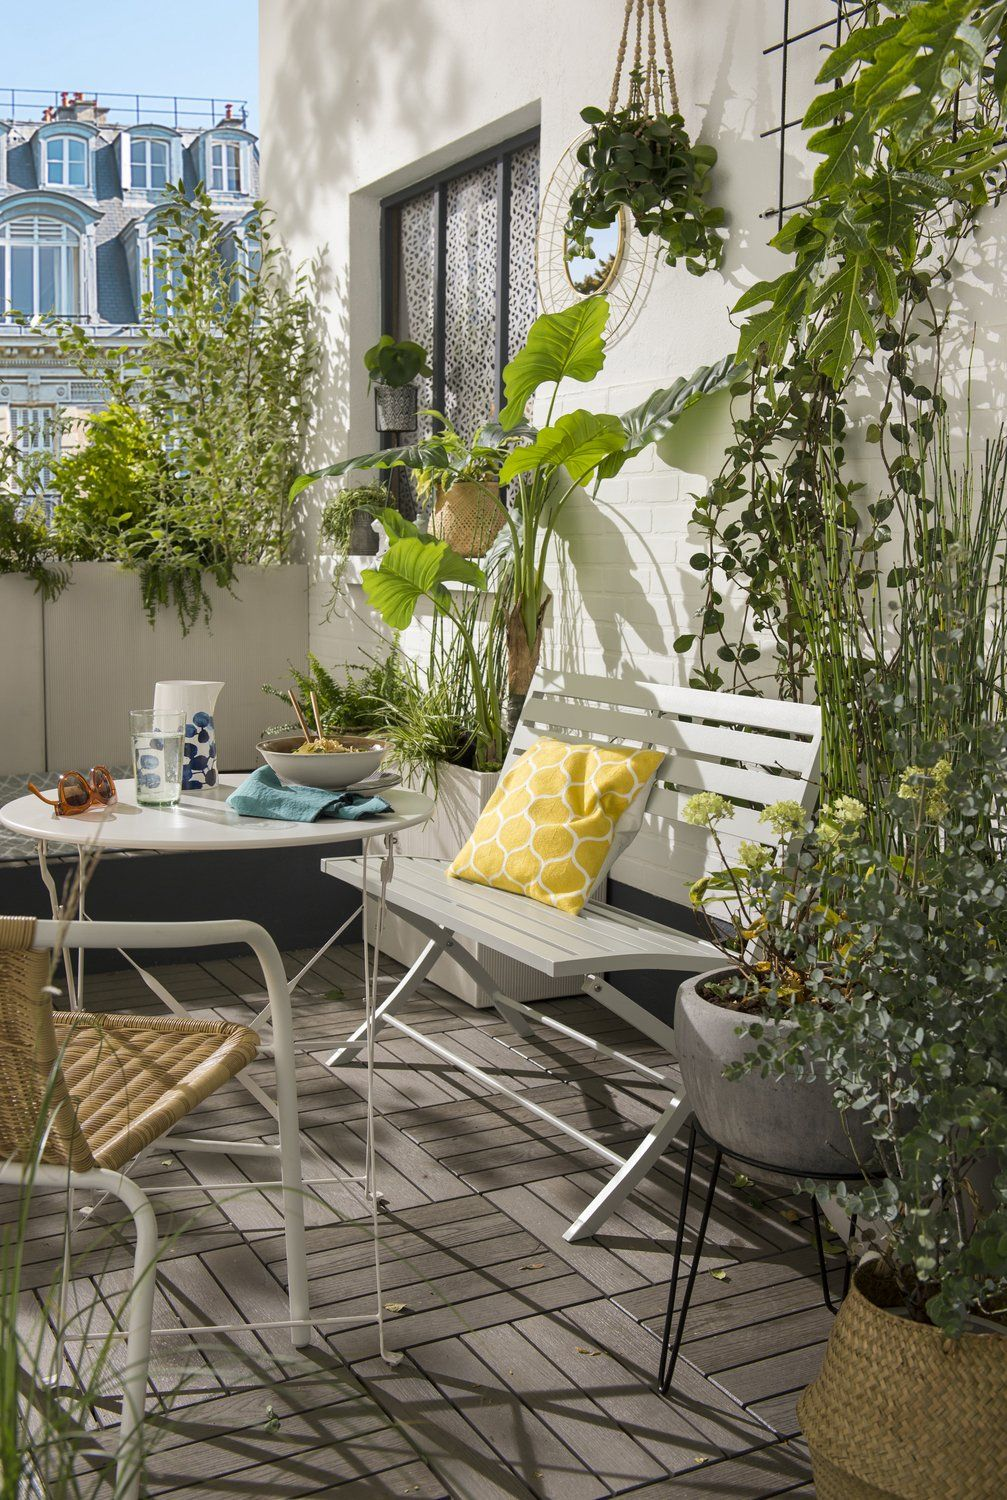 La Nouvelle Collection De Salon De Jardin 2019 Leroy